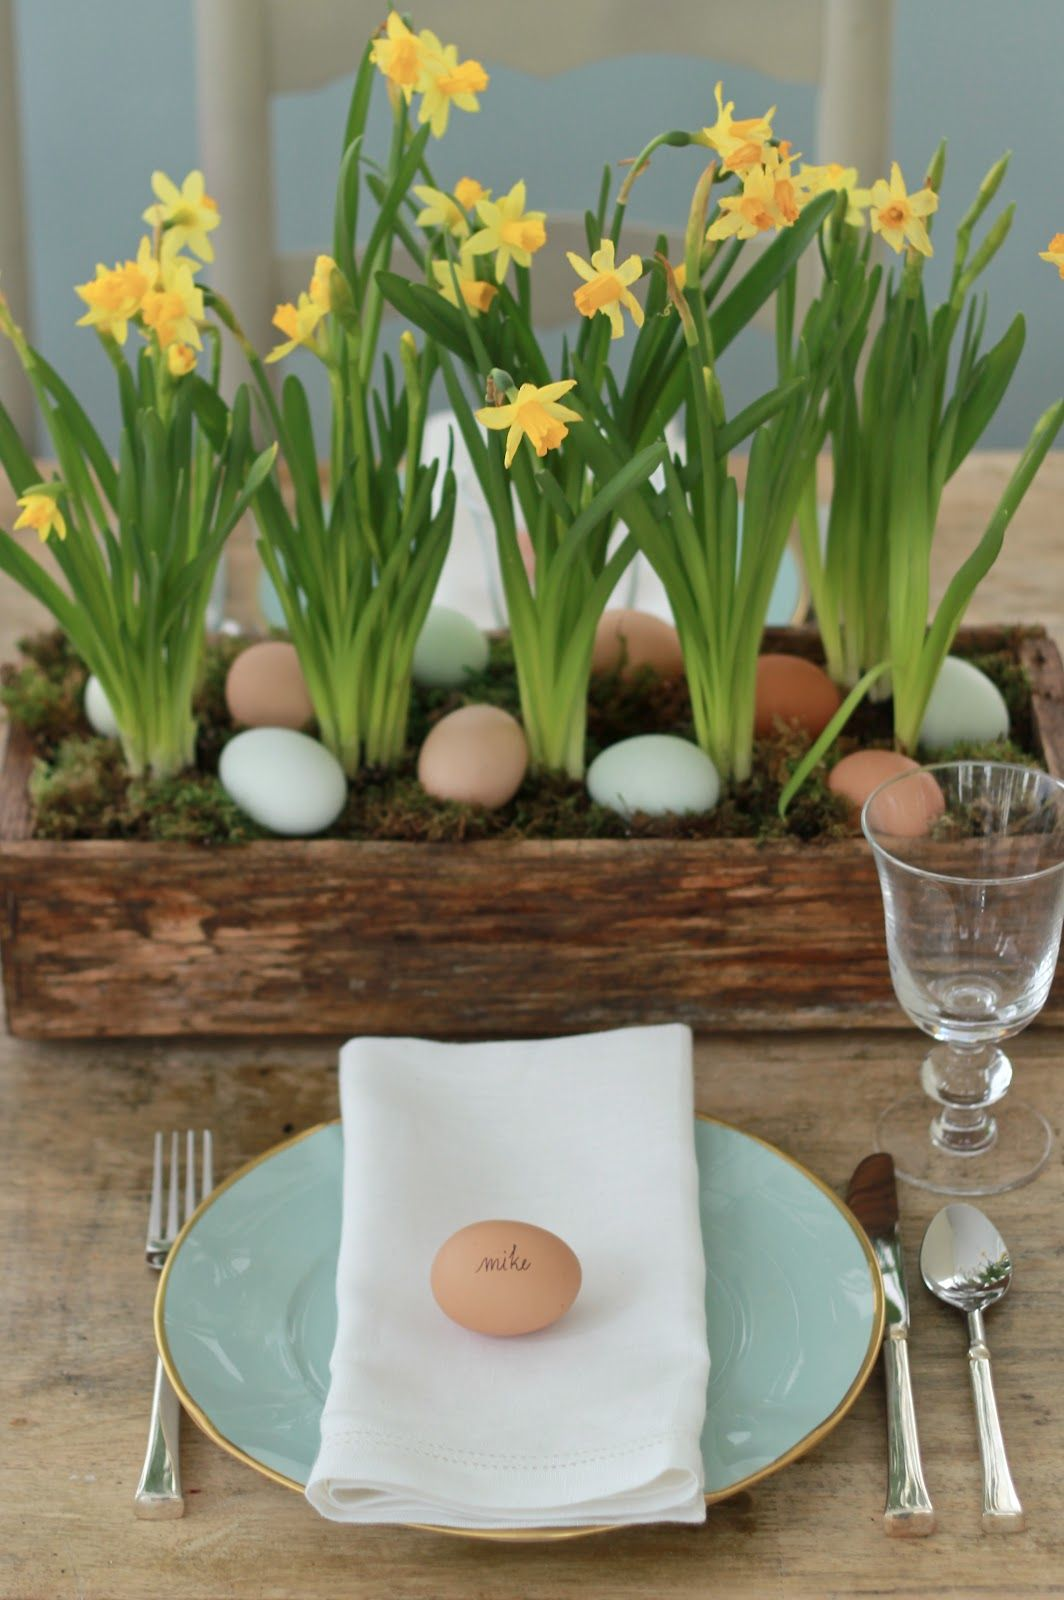 Spring Or Easter Table Setting: Egg As A Placecard And Spring Centerpiece